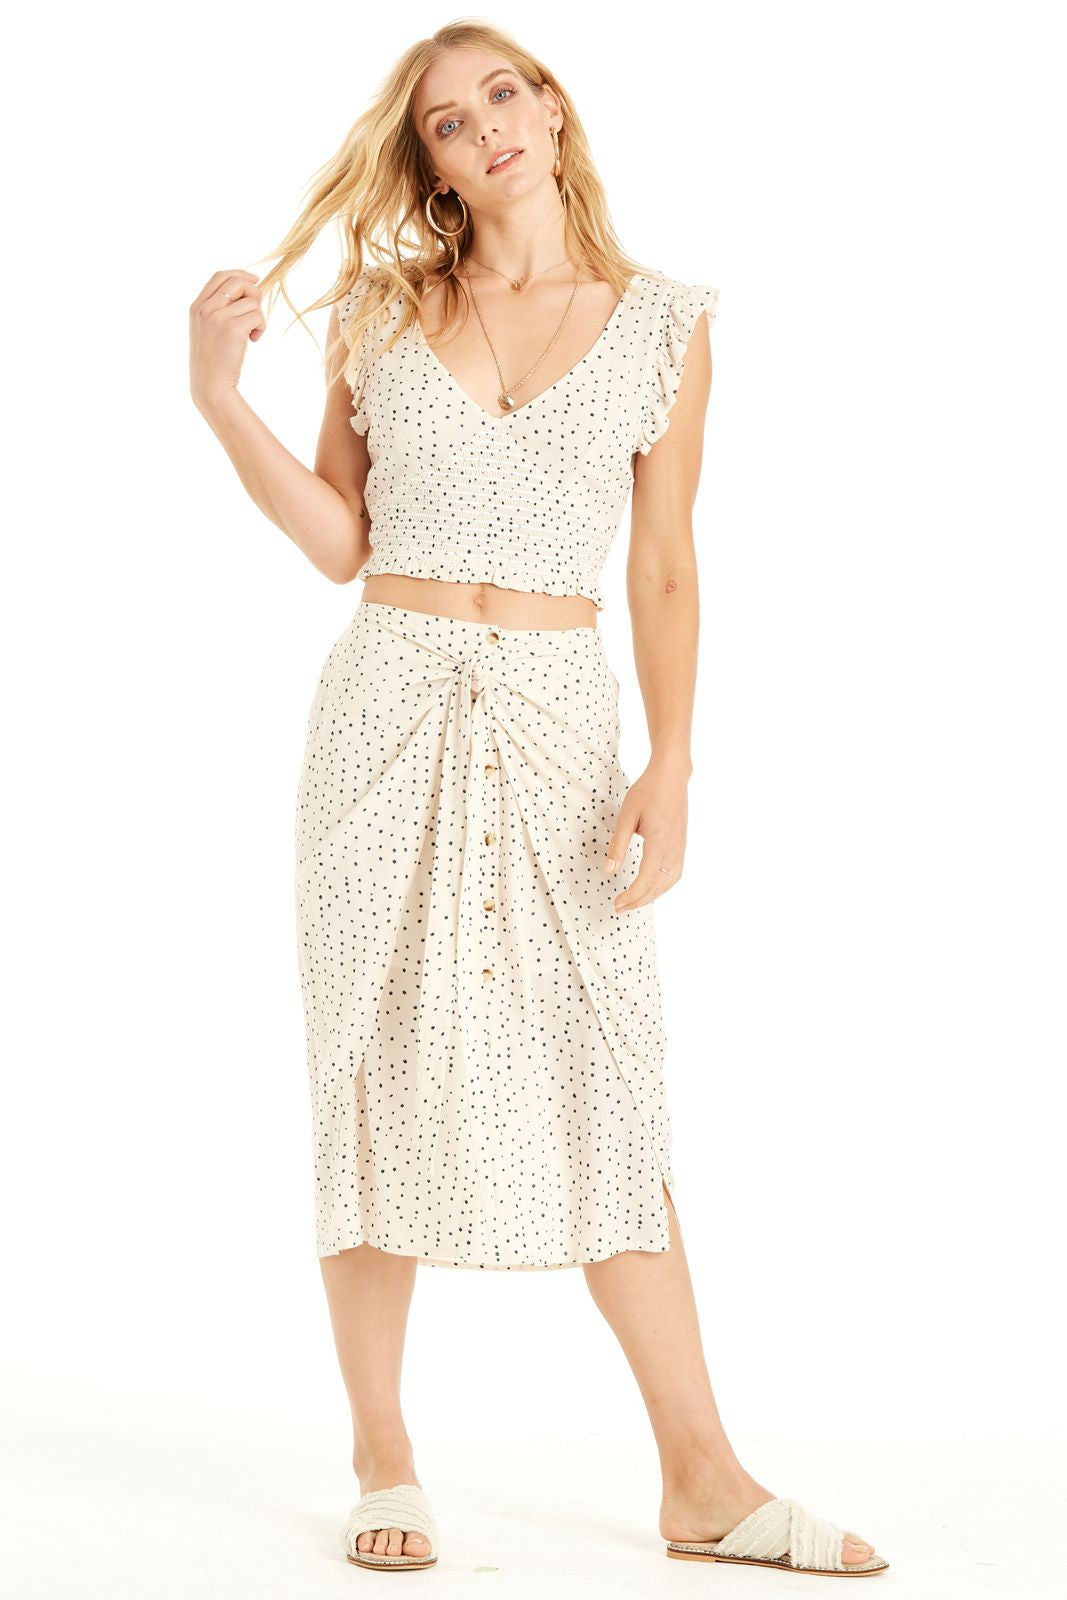 High waisted cream skirt with polka dot print. Featuring front tie with button detailing.